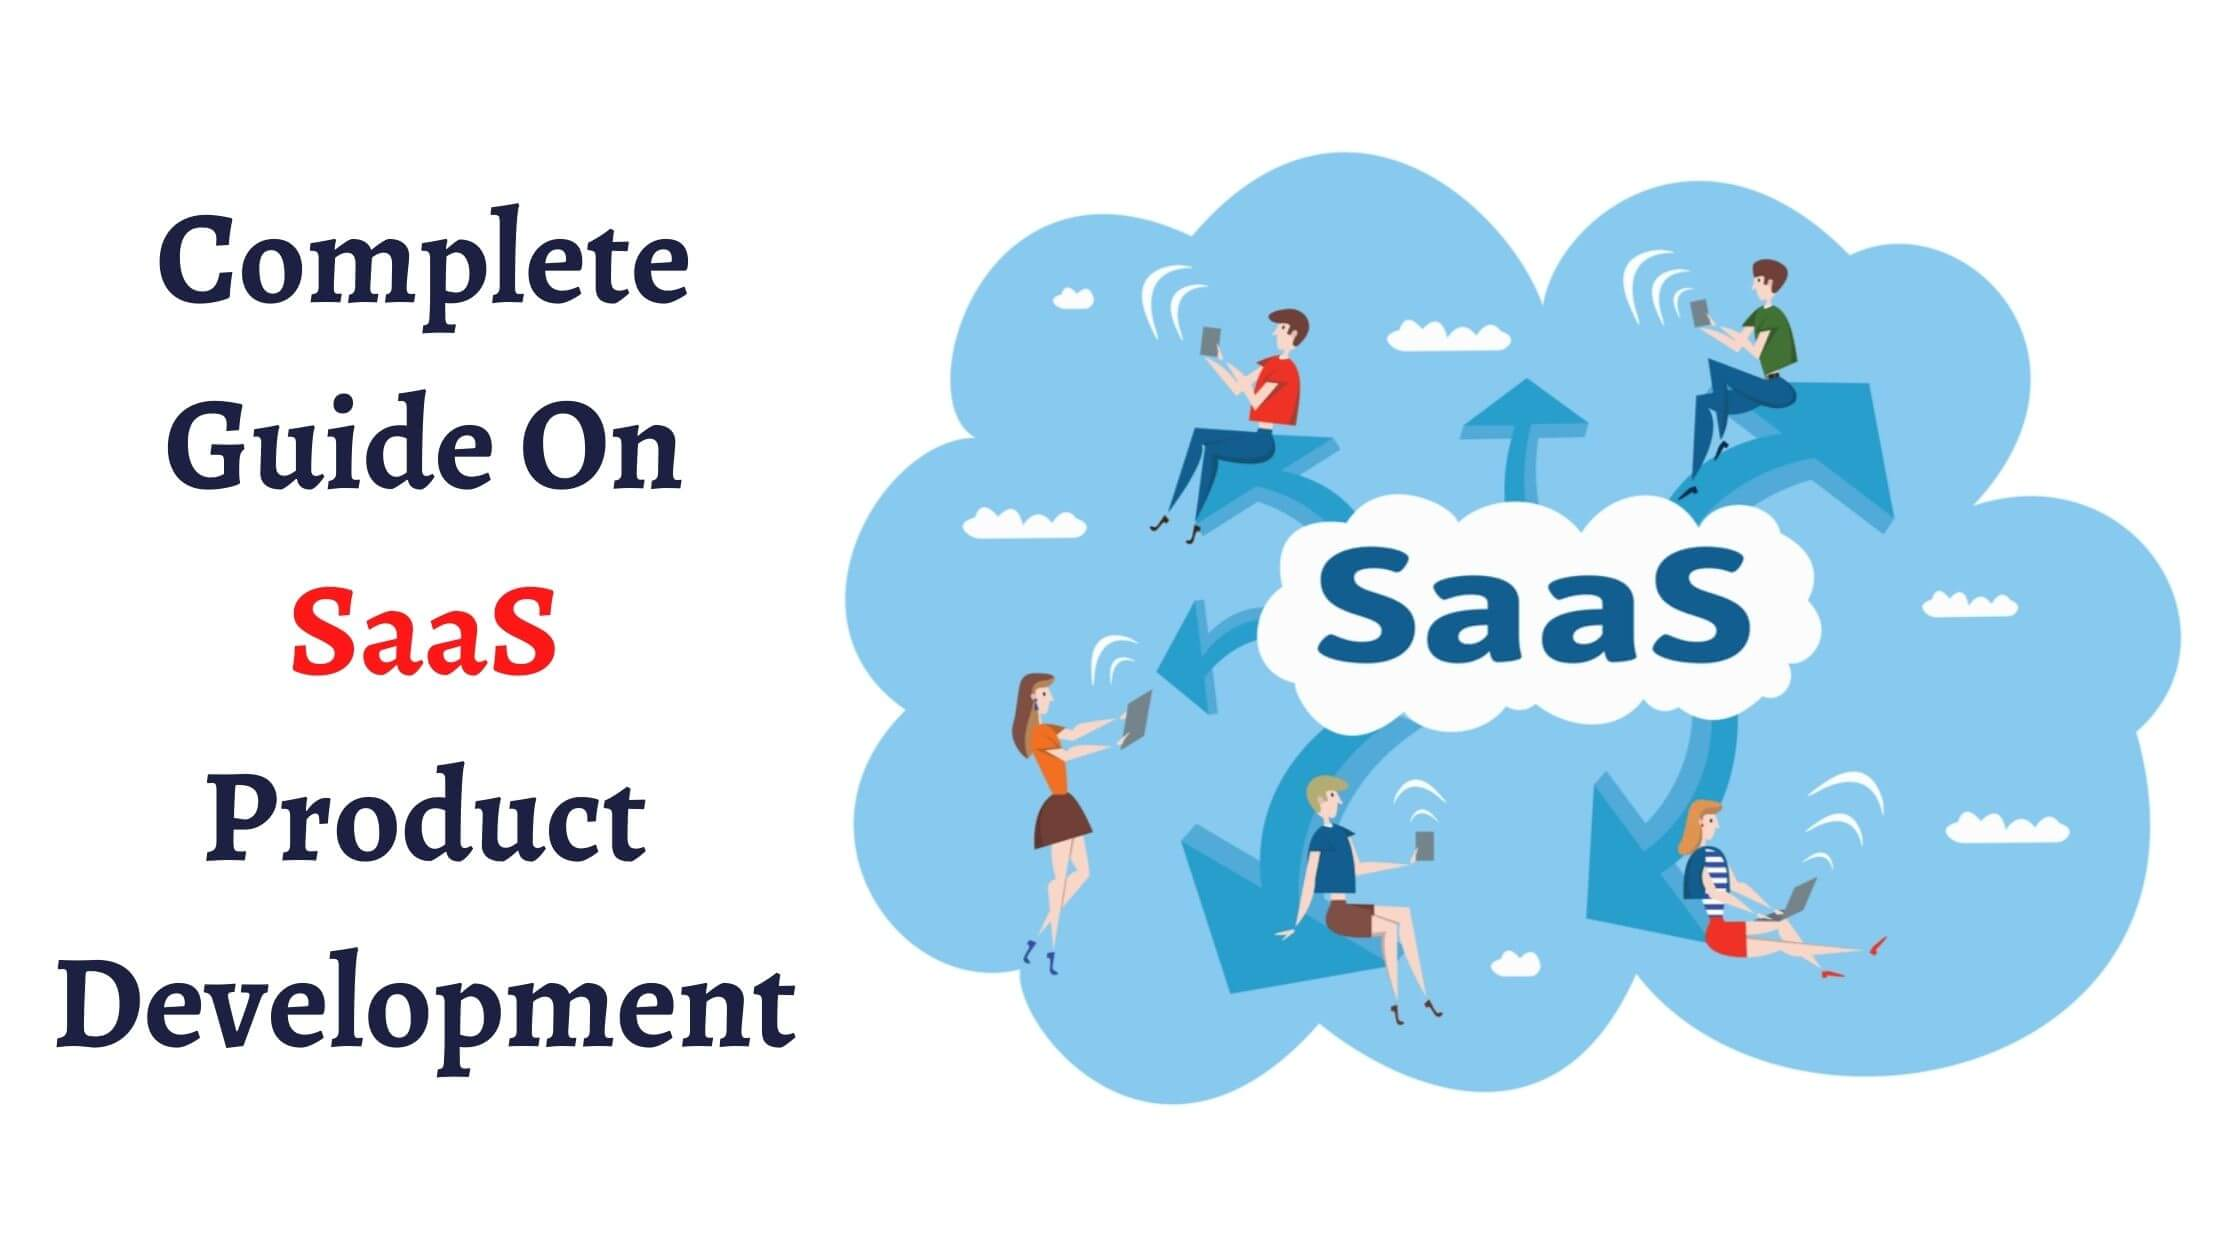 Complete Guide On SaaS Product Development